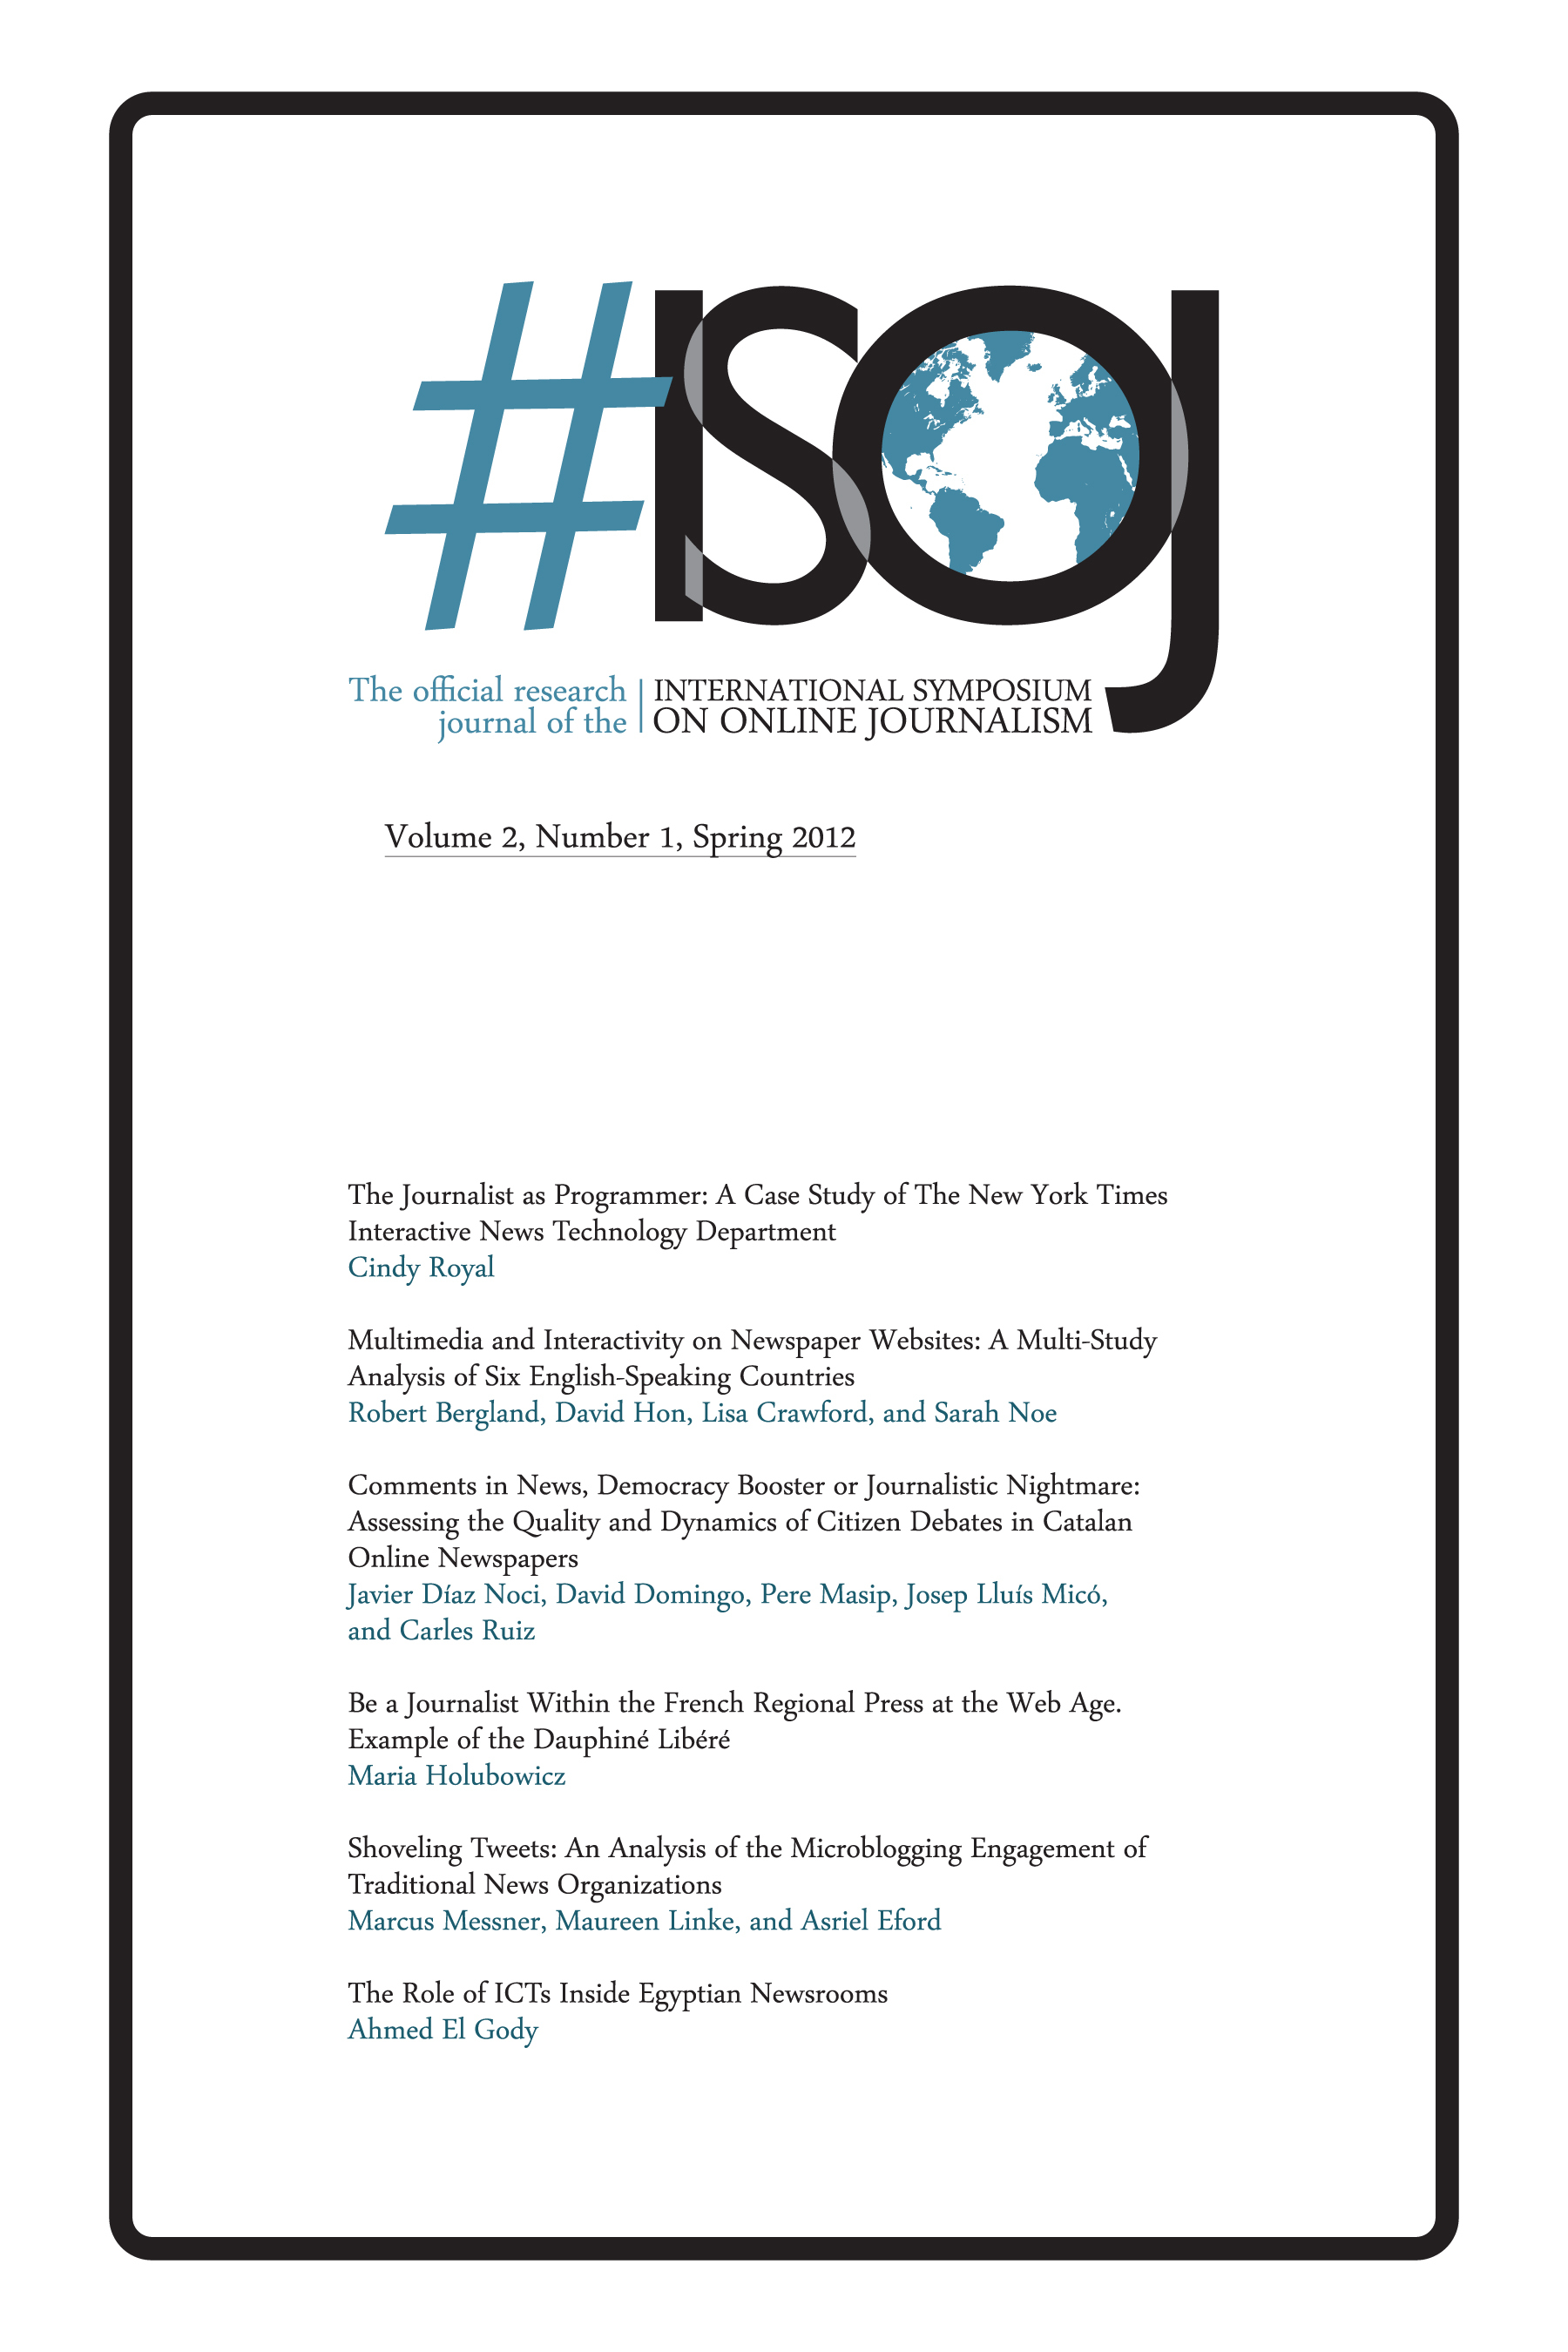 #ISOJ The official research journal of the International Symposium on Online Journalism, Volume 2, Number 1